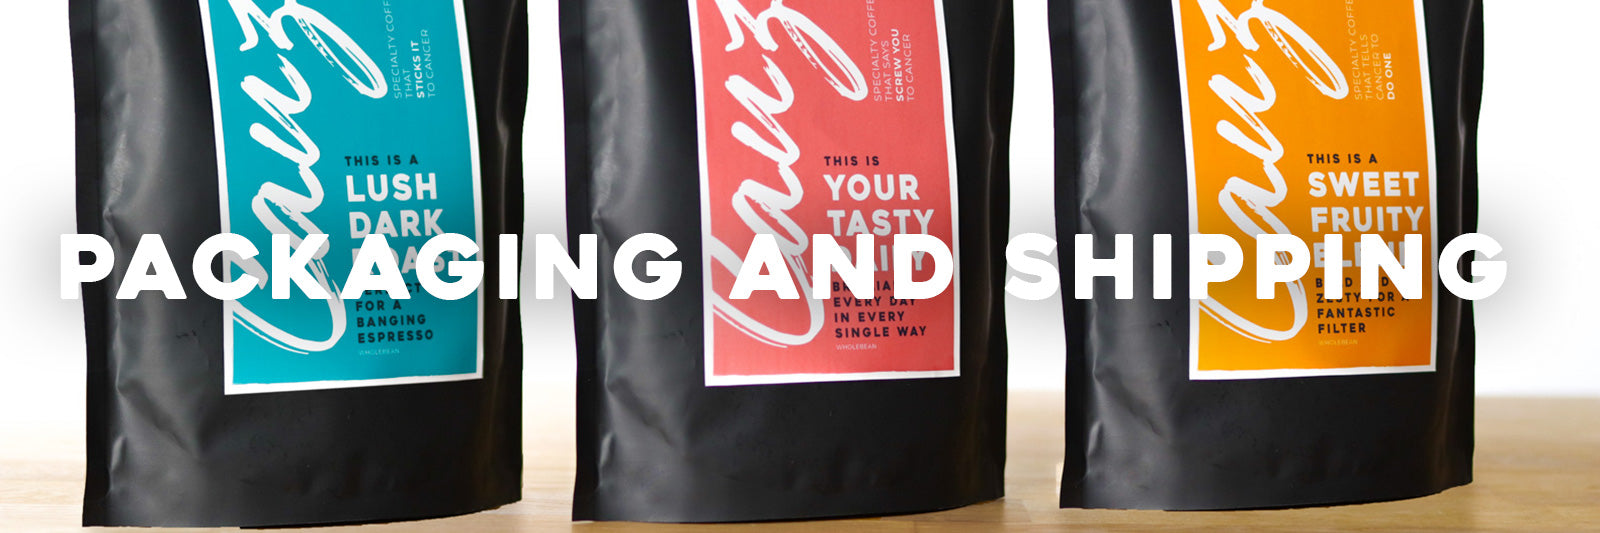 Cauz Coffe Packaging and Shipping Quality